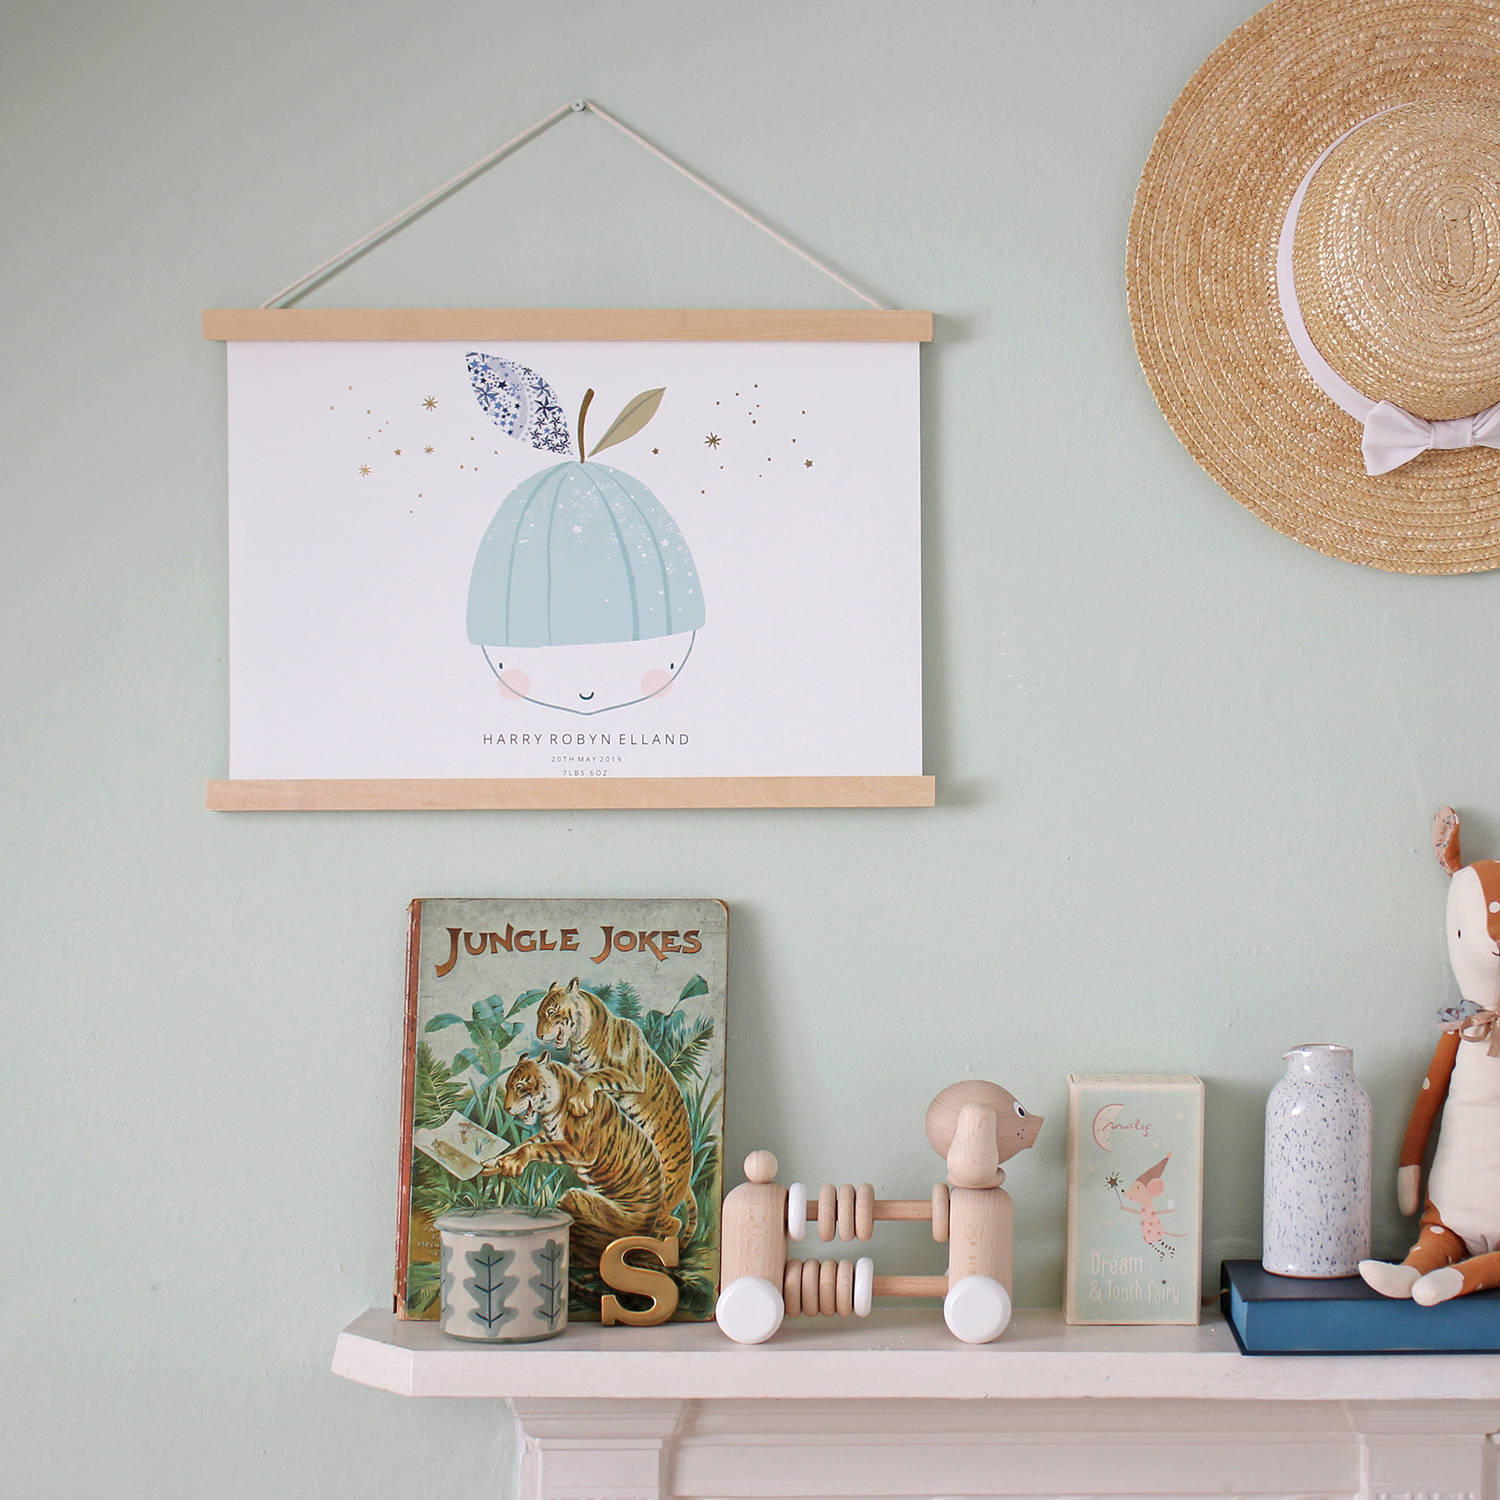 The-Charming-Press-product-photography-nancy-straughan-nursery-prints-art-styling-baby-boy.jpg